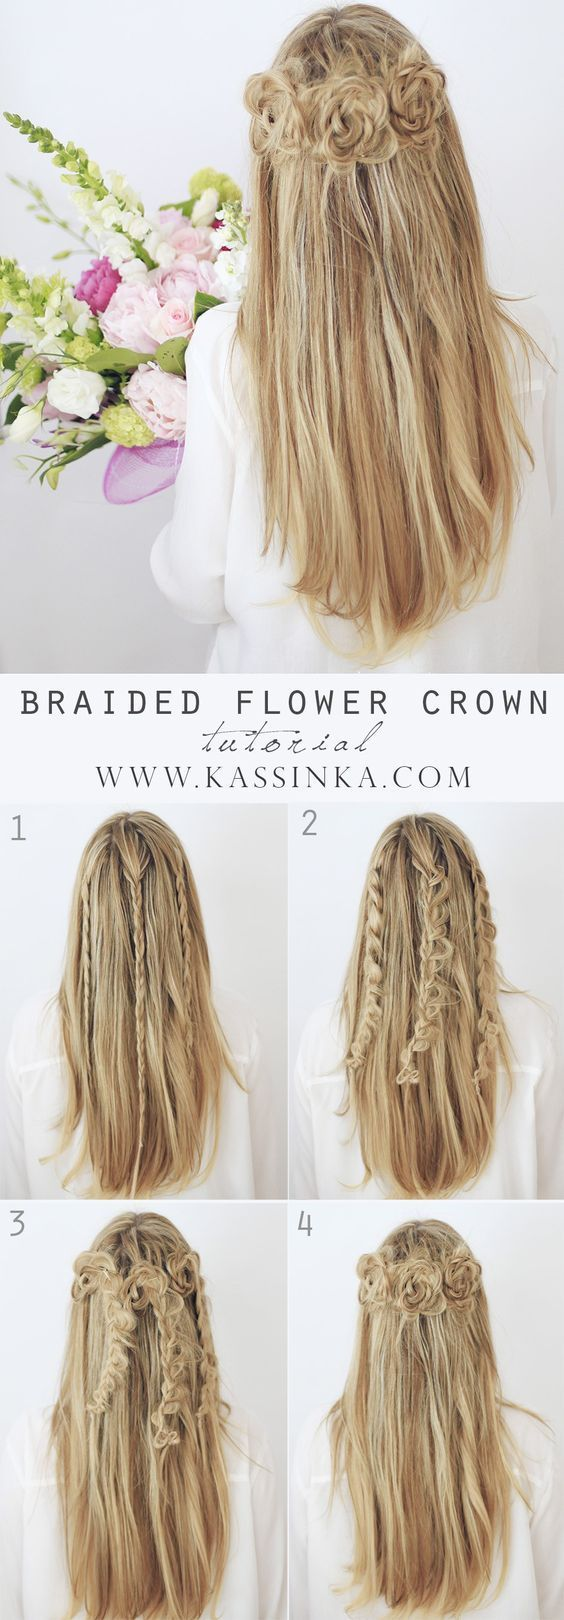 awesome 100 Super Easy DIY  Braided Hairstyles for Wedding Tutorials by http://www.dana-haircuts.xyz/hair-tutorials/100-super-easy-diy-braided-hairstyles-for-wedding-tutorials-7/